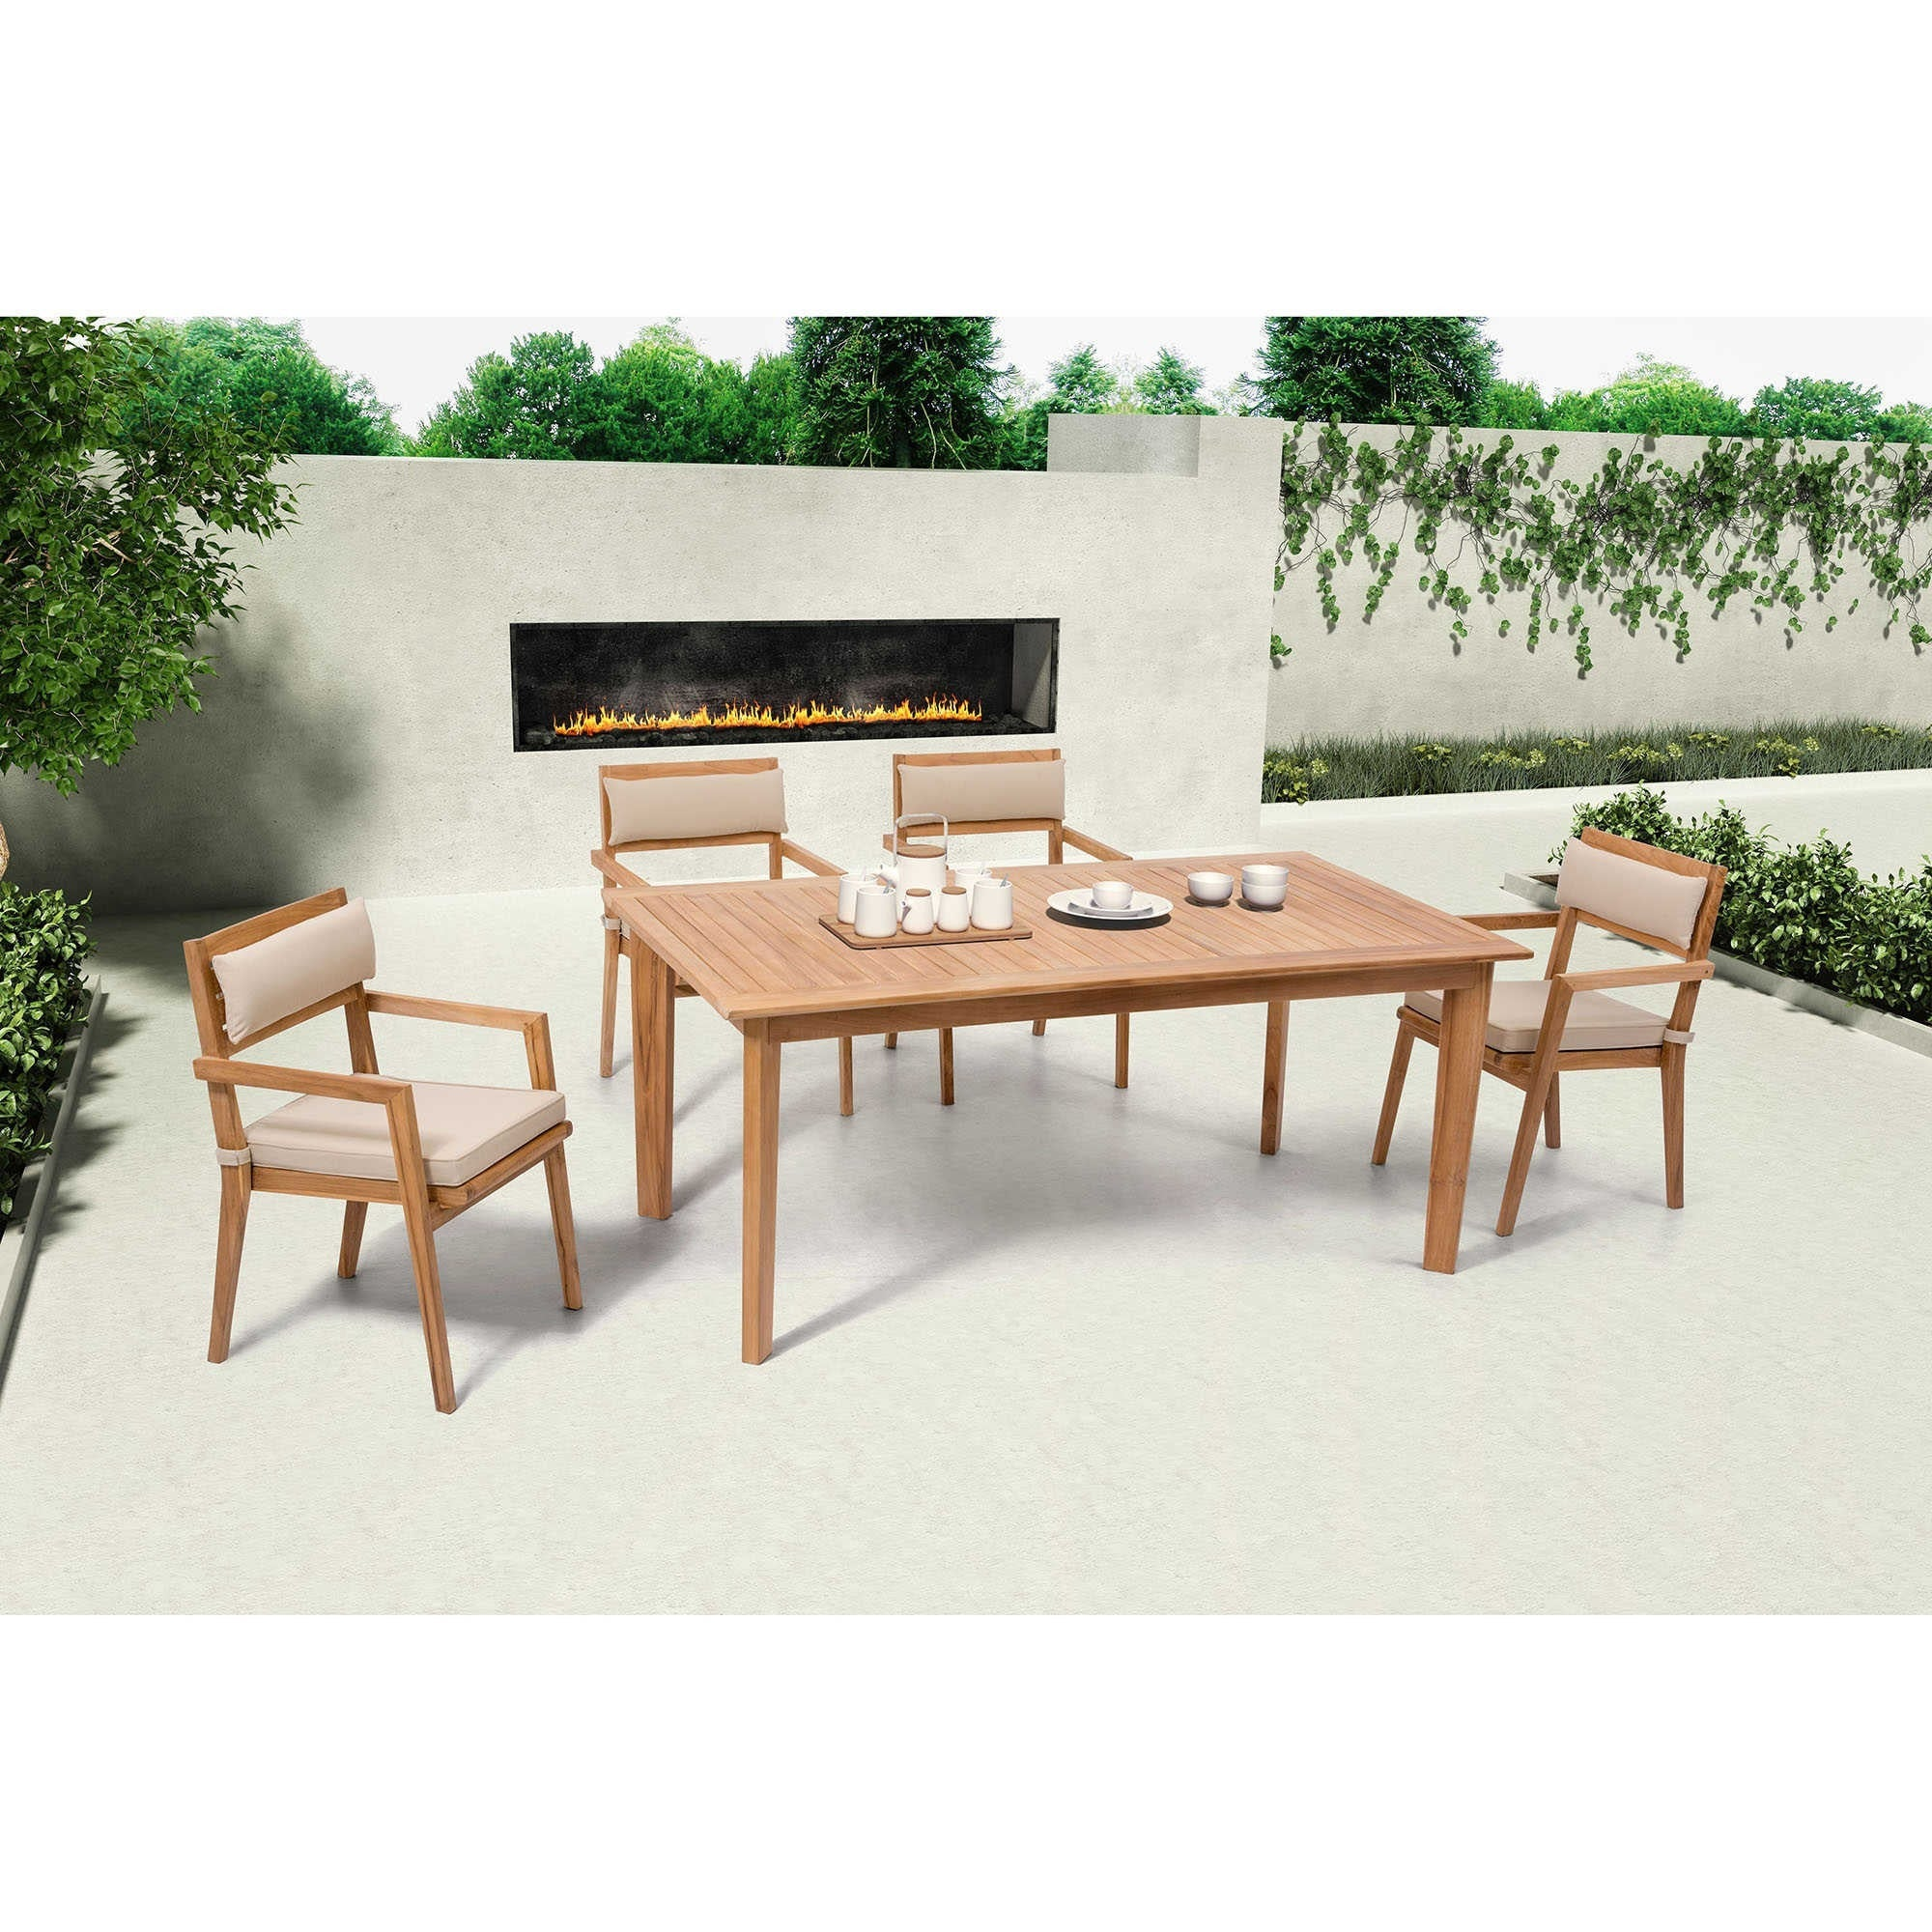 Zuo Modern Nautical Patio Dining Set (6 Chairs) Natural Teak Wood  703556 PD S3